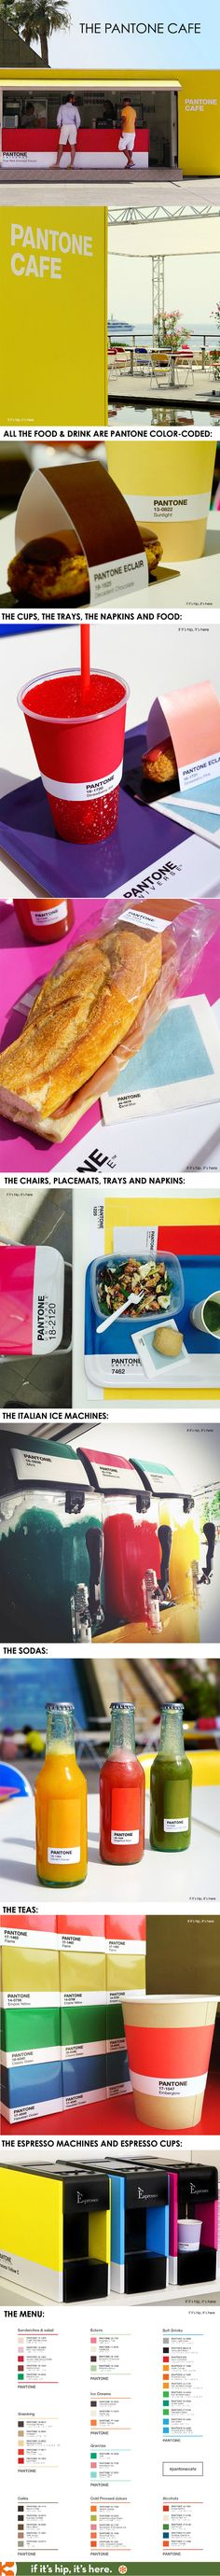 The Pop-Up Pantone Cafe has color-coded food and drink, colorful packaging…